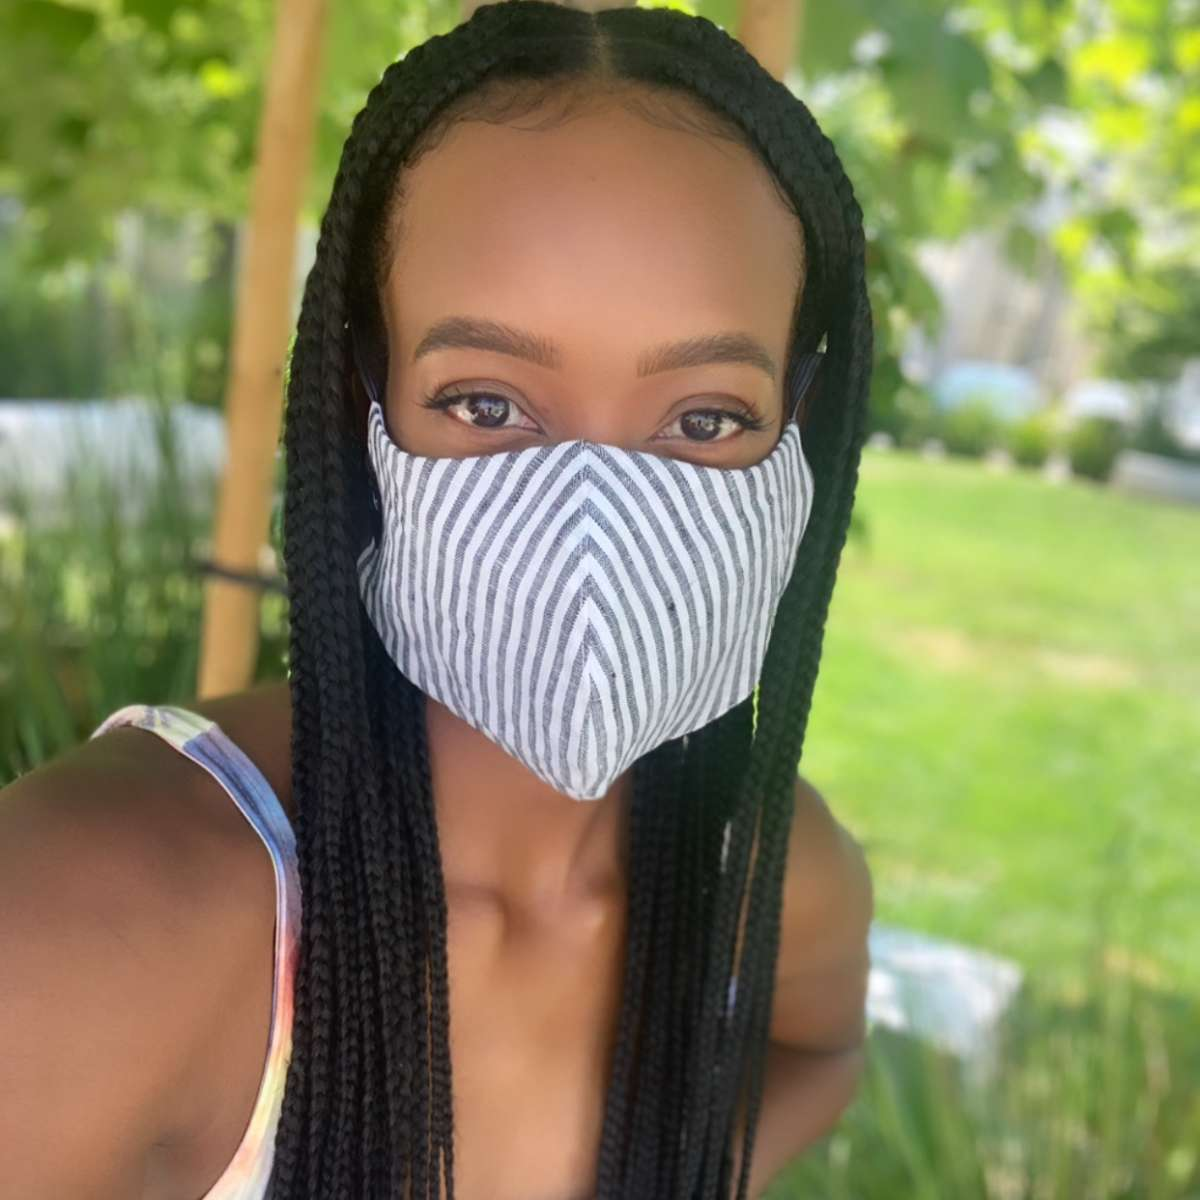 Shop this mask by Kynsho